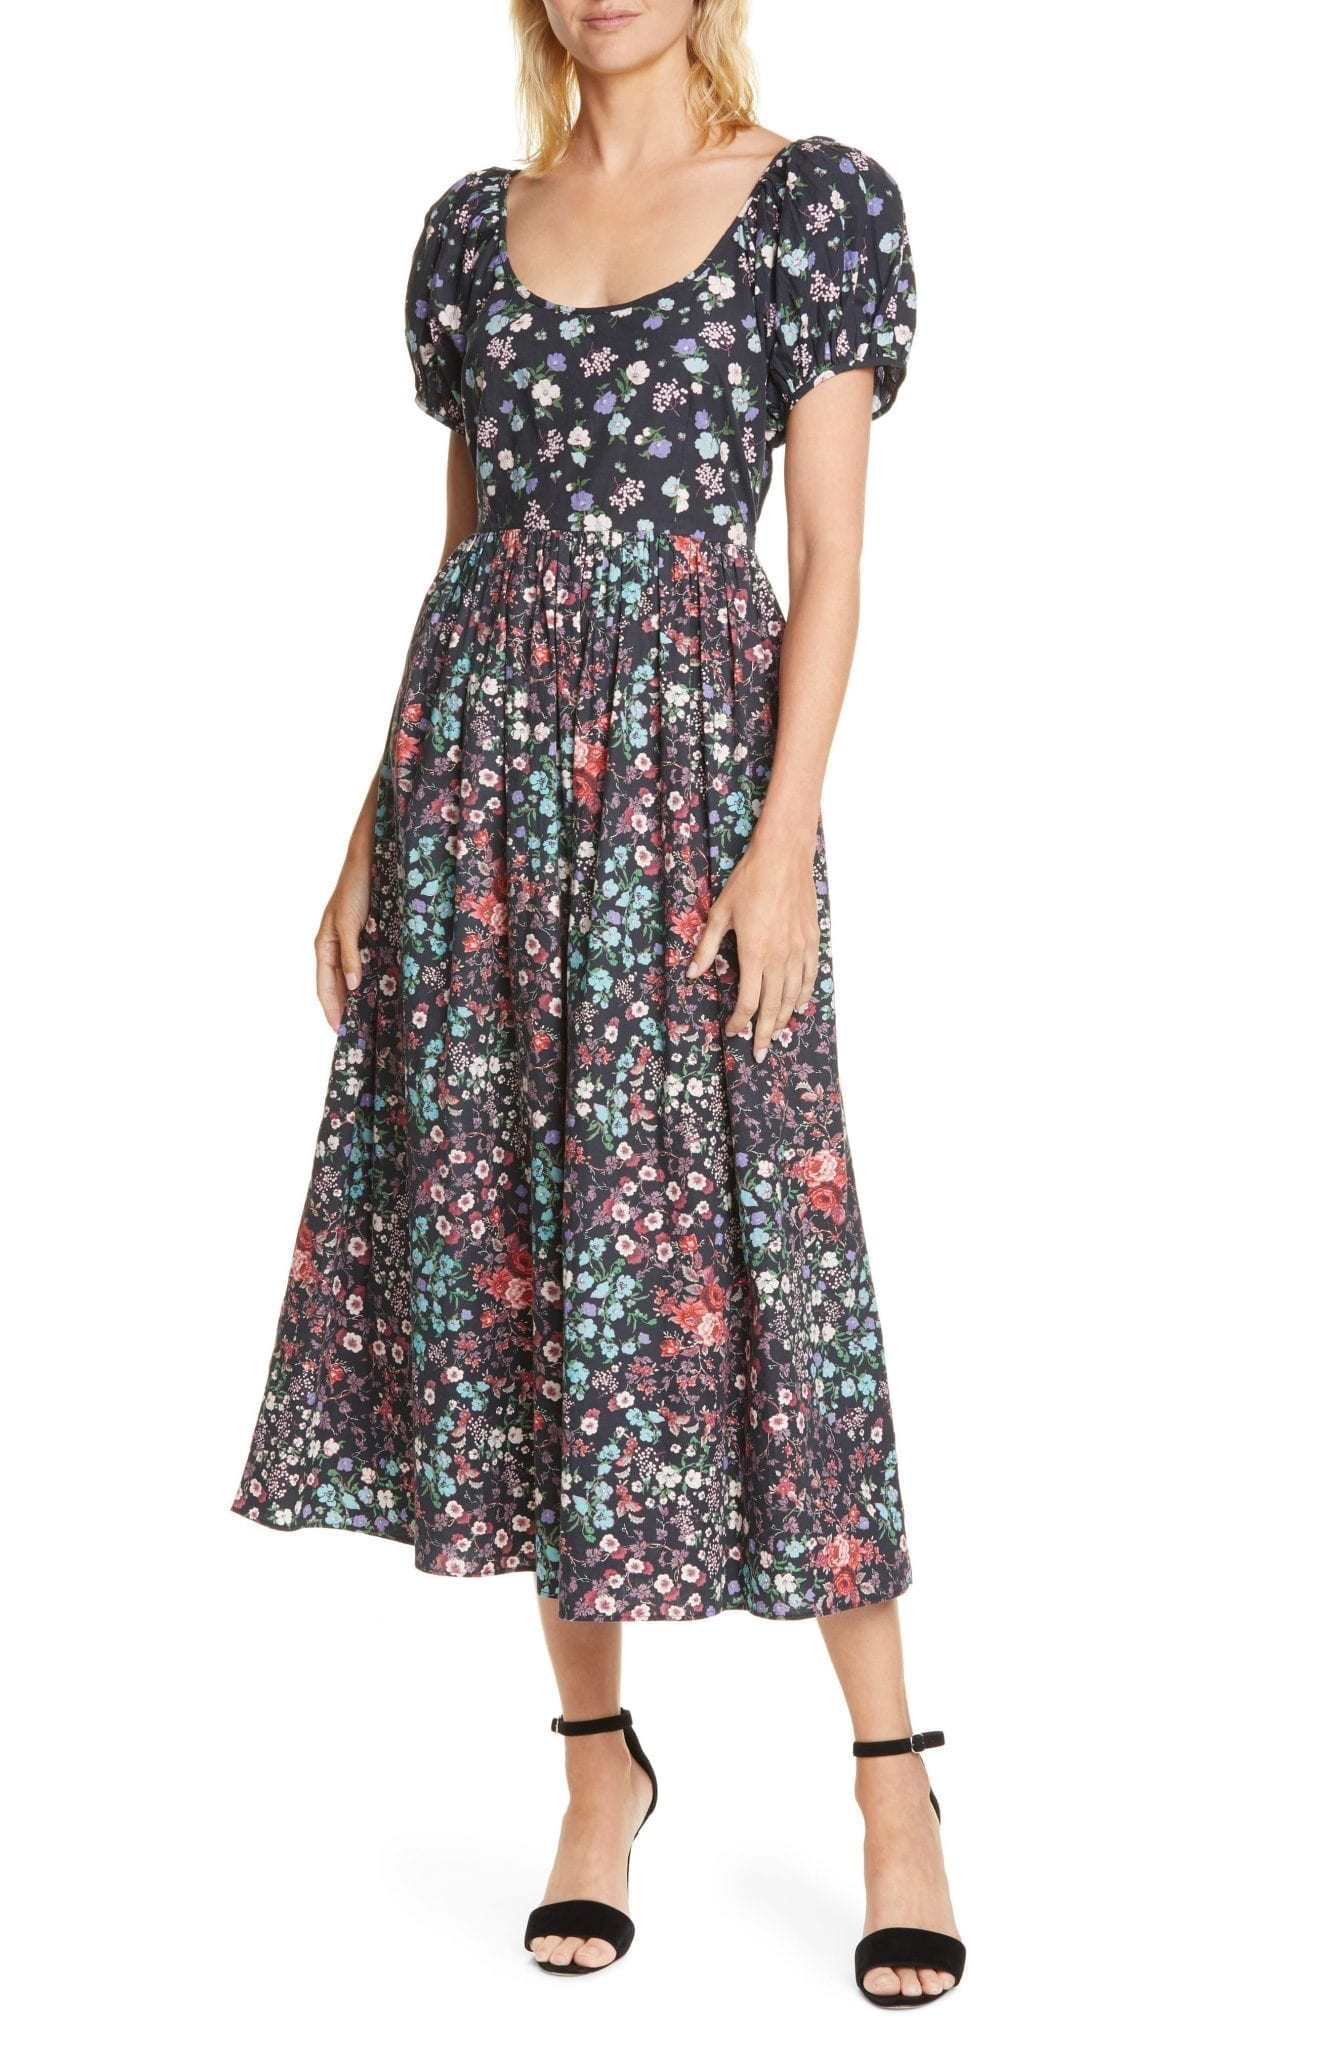 LOVESHACKFANCY Lais Floral Puff Sleeve Cotton A-Line Dress